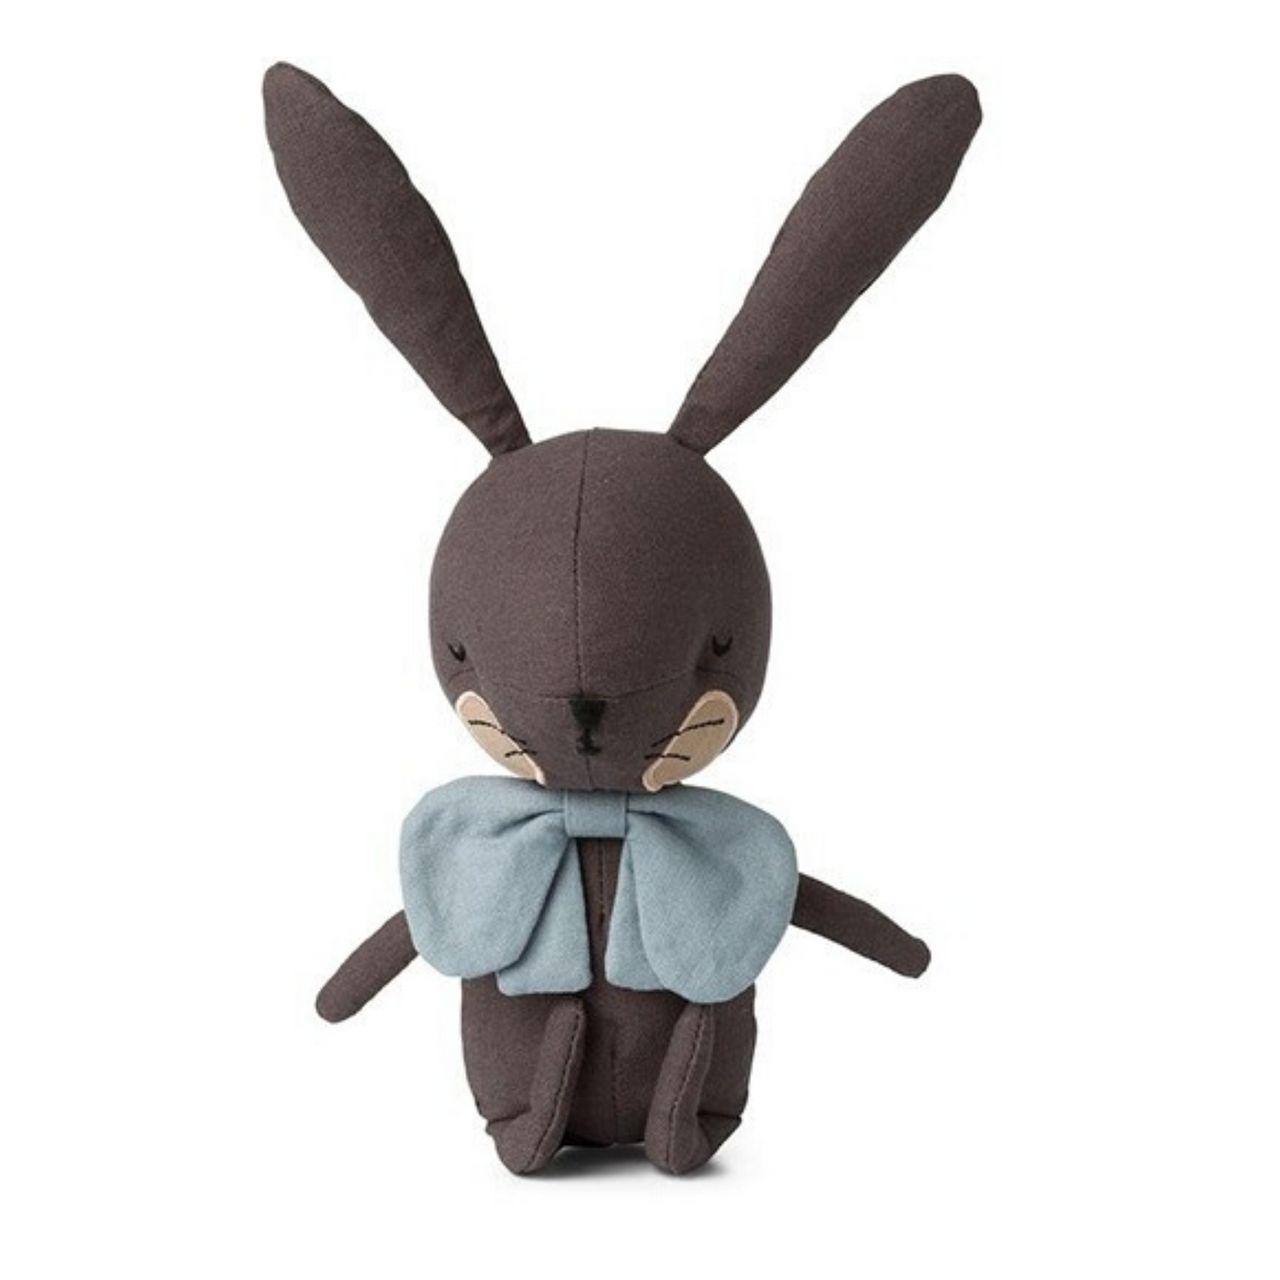 Grey Rabbit Soft Toy in a Gift Box - Rooms for Rascals, a Leafy Lanes Retailers Ltd business